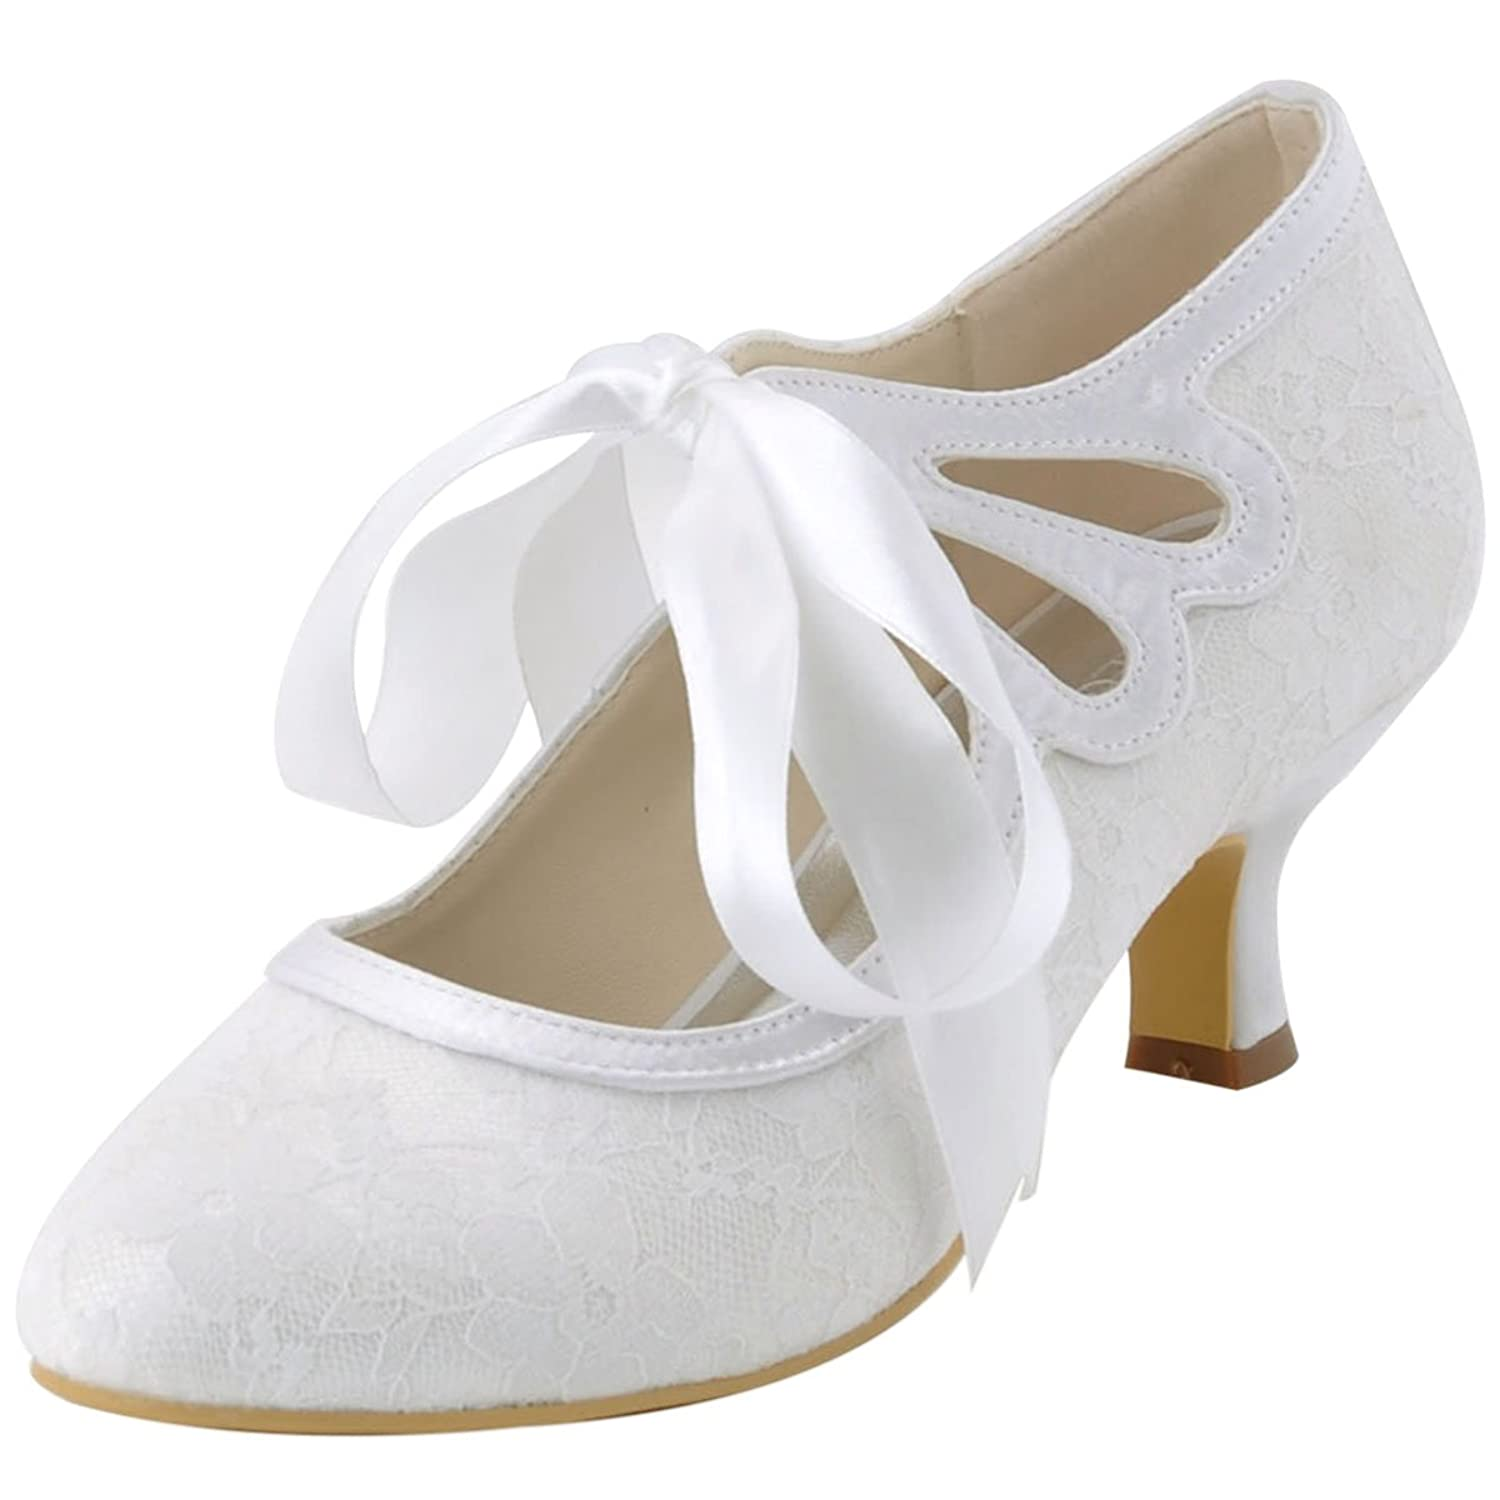 41e820e59e Vintage Style Wedding Shoes, Retro Inspired Shoes